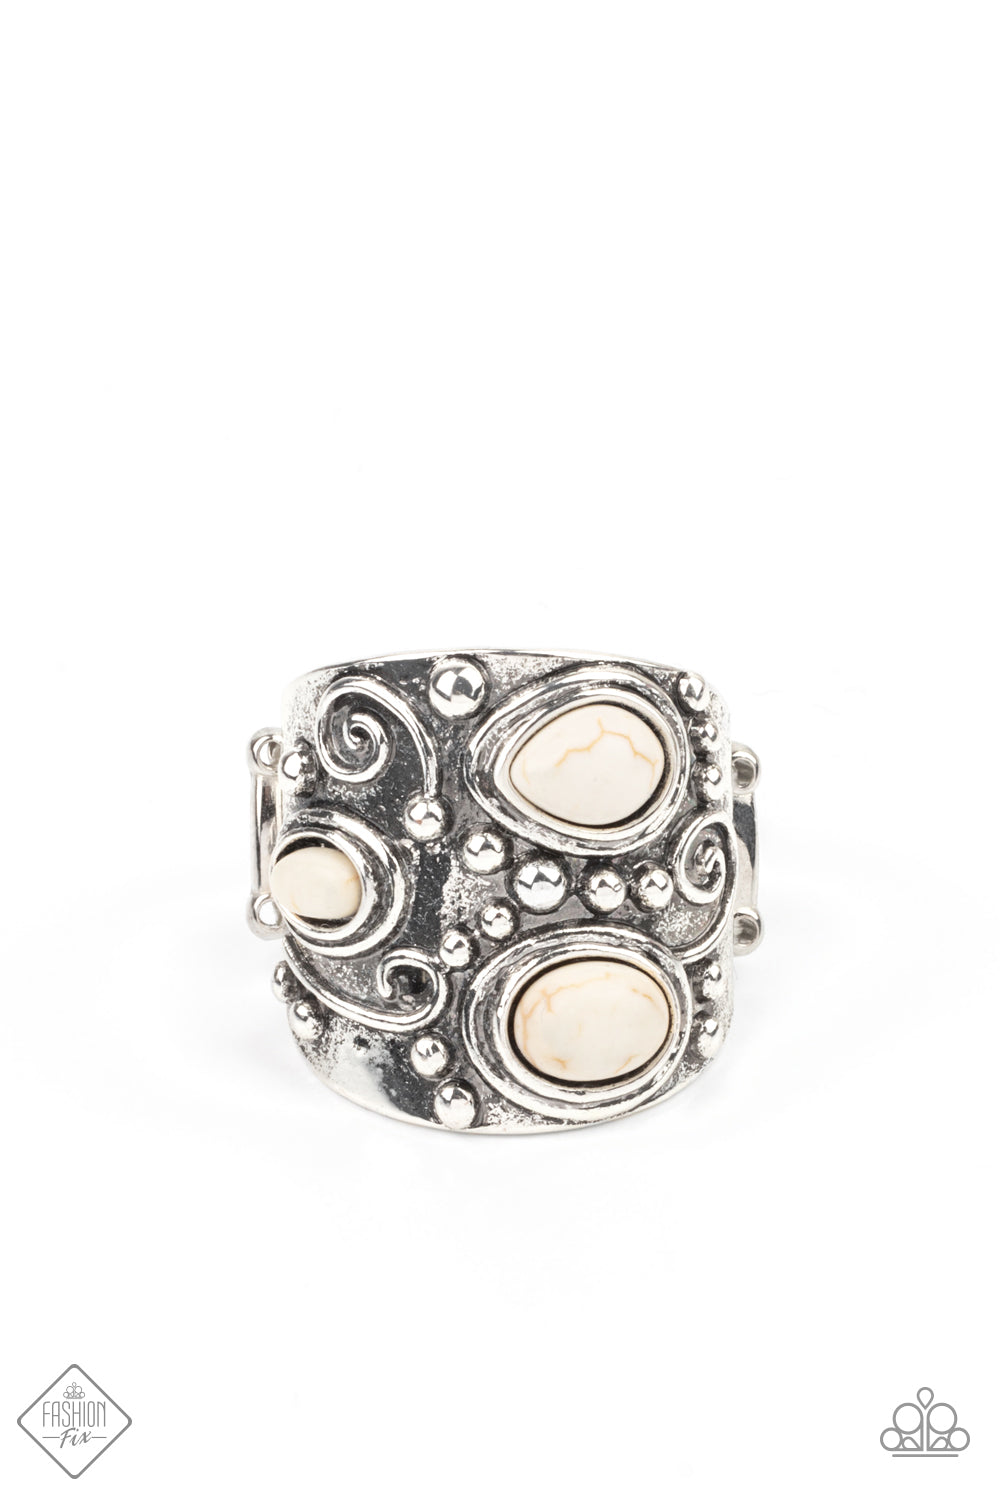 Paparazzi Ring Fashion Fix Jan 2021 ~ Modern Mountain Ranger - White